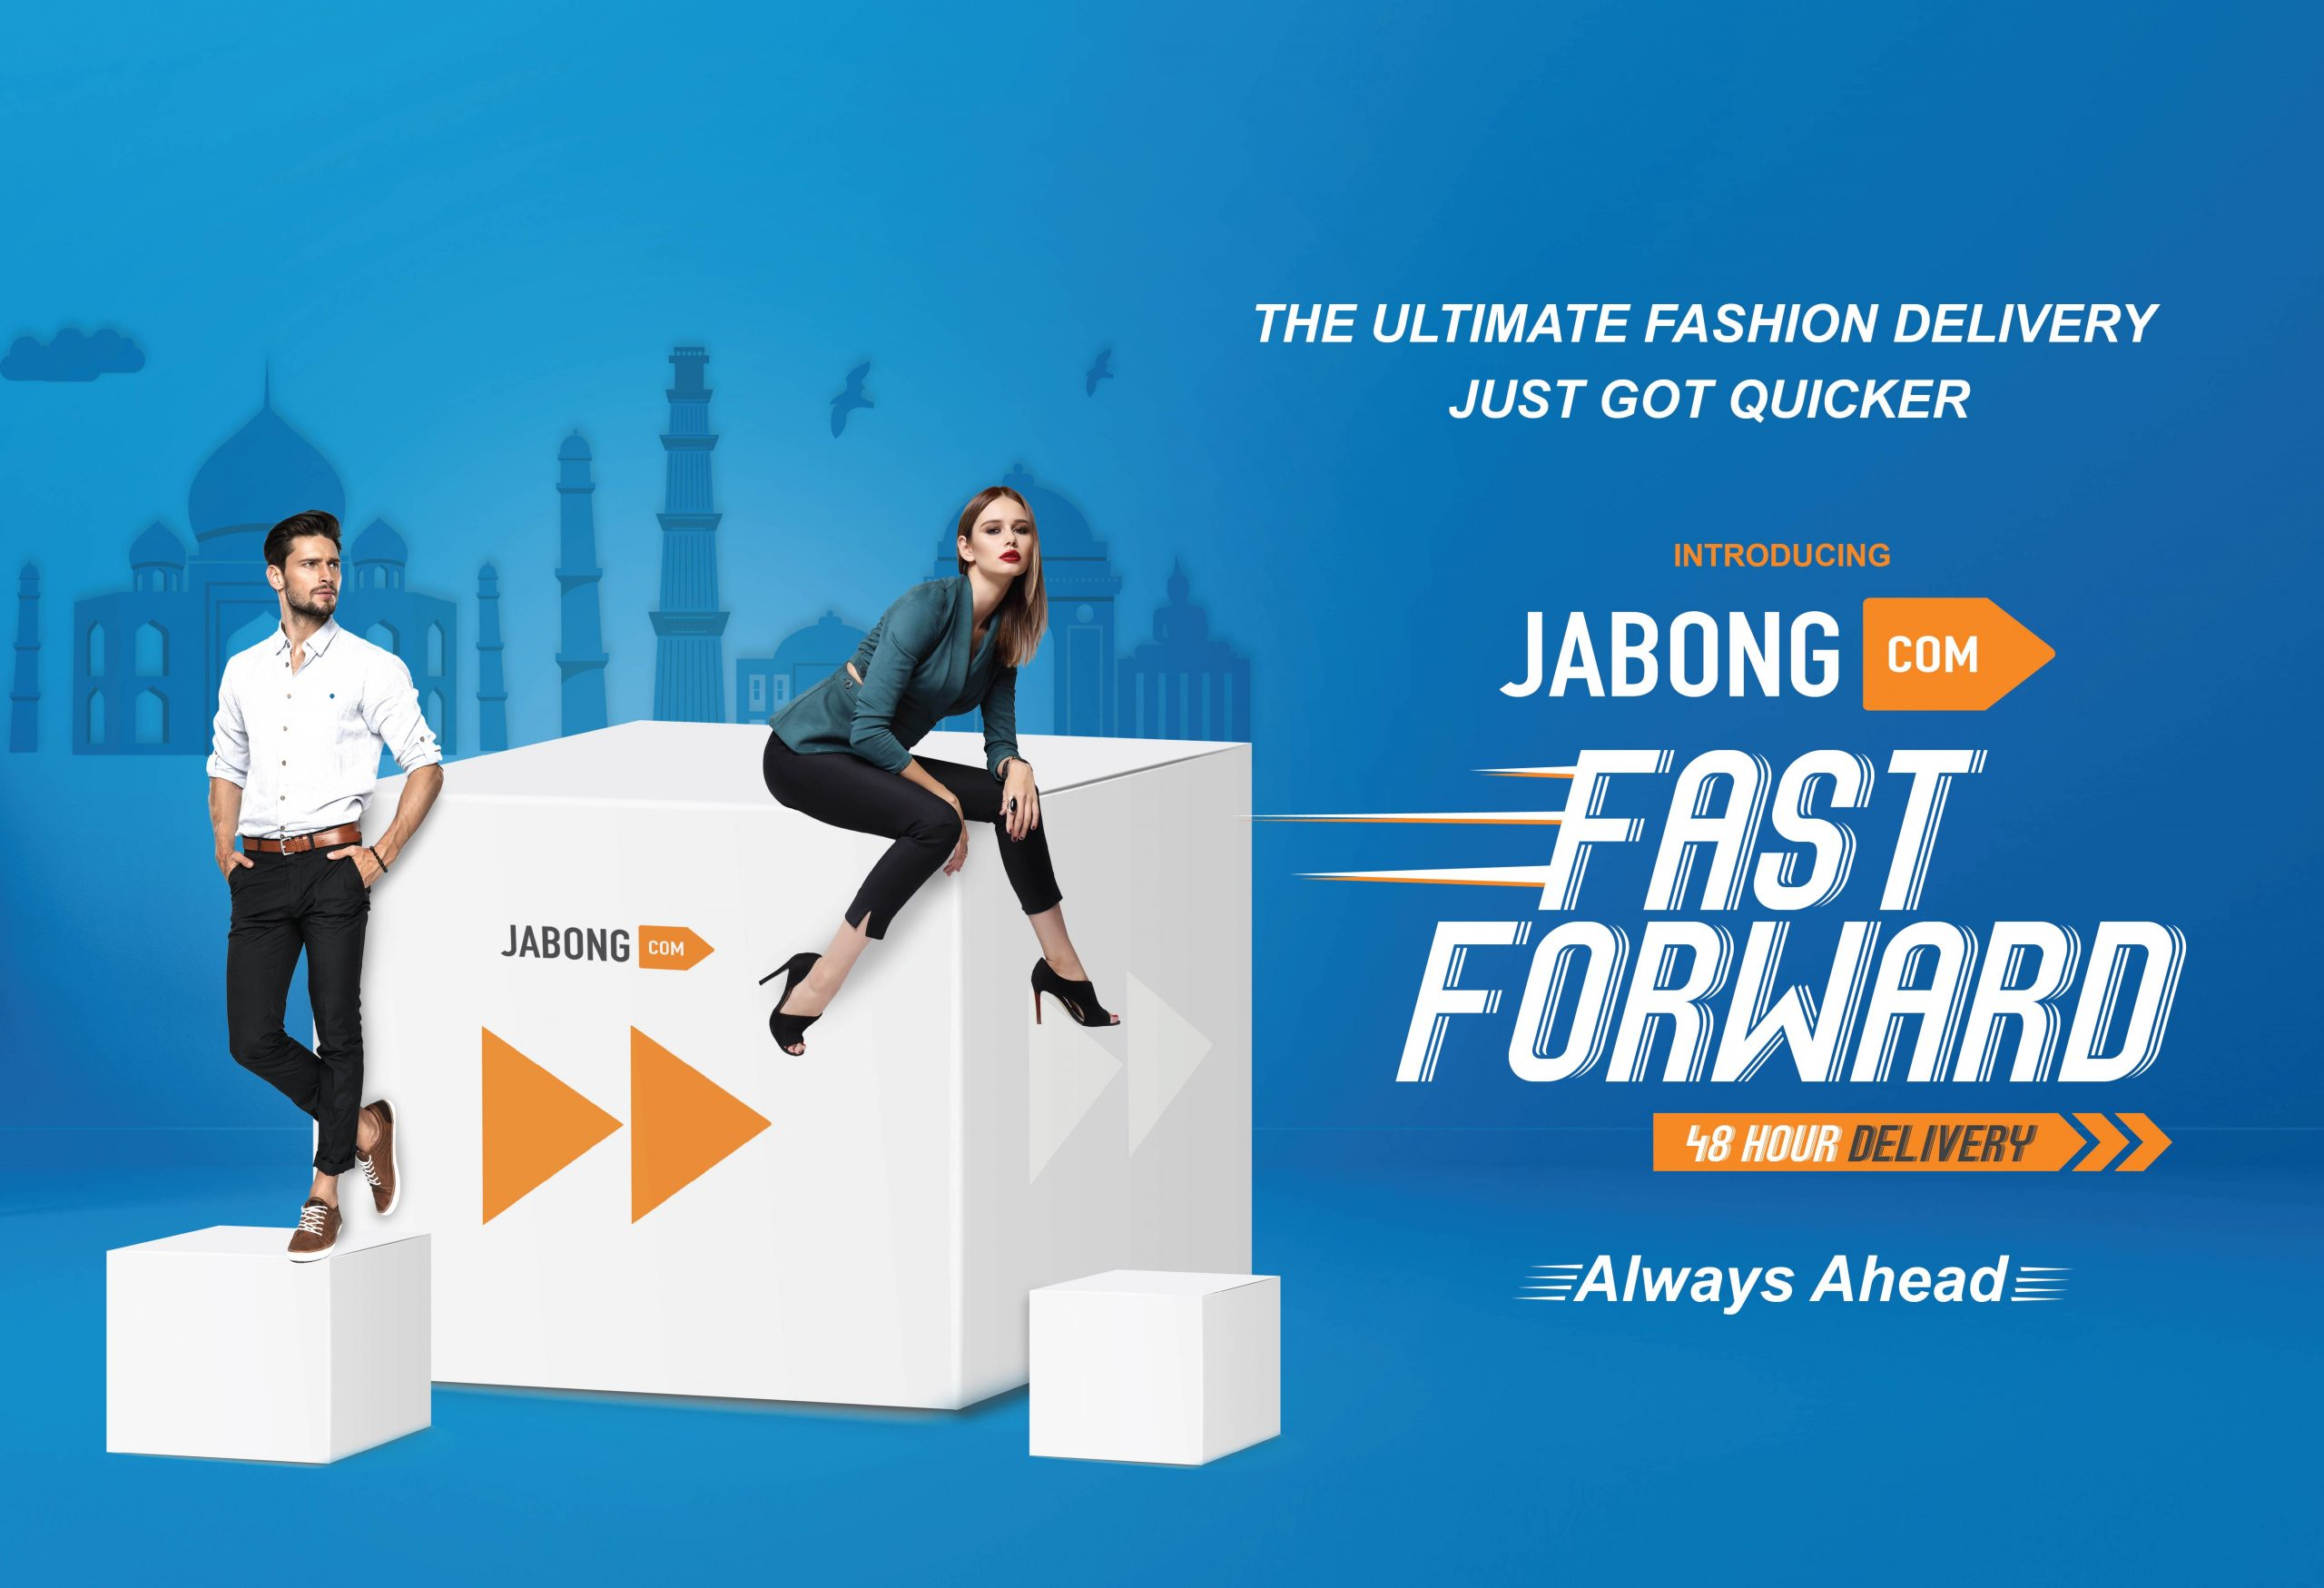 jabong 2day delivery_campaign-10